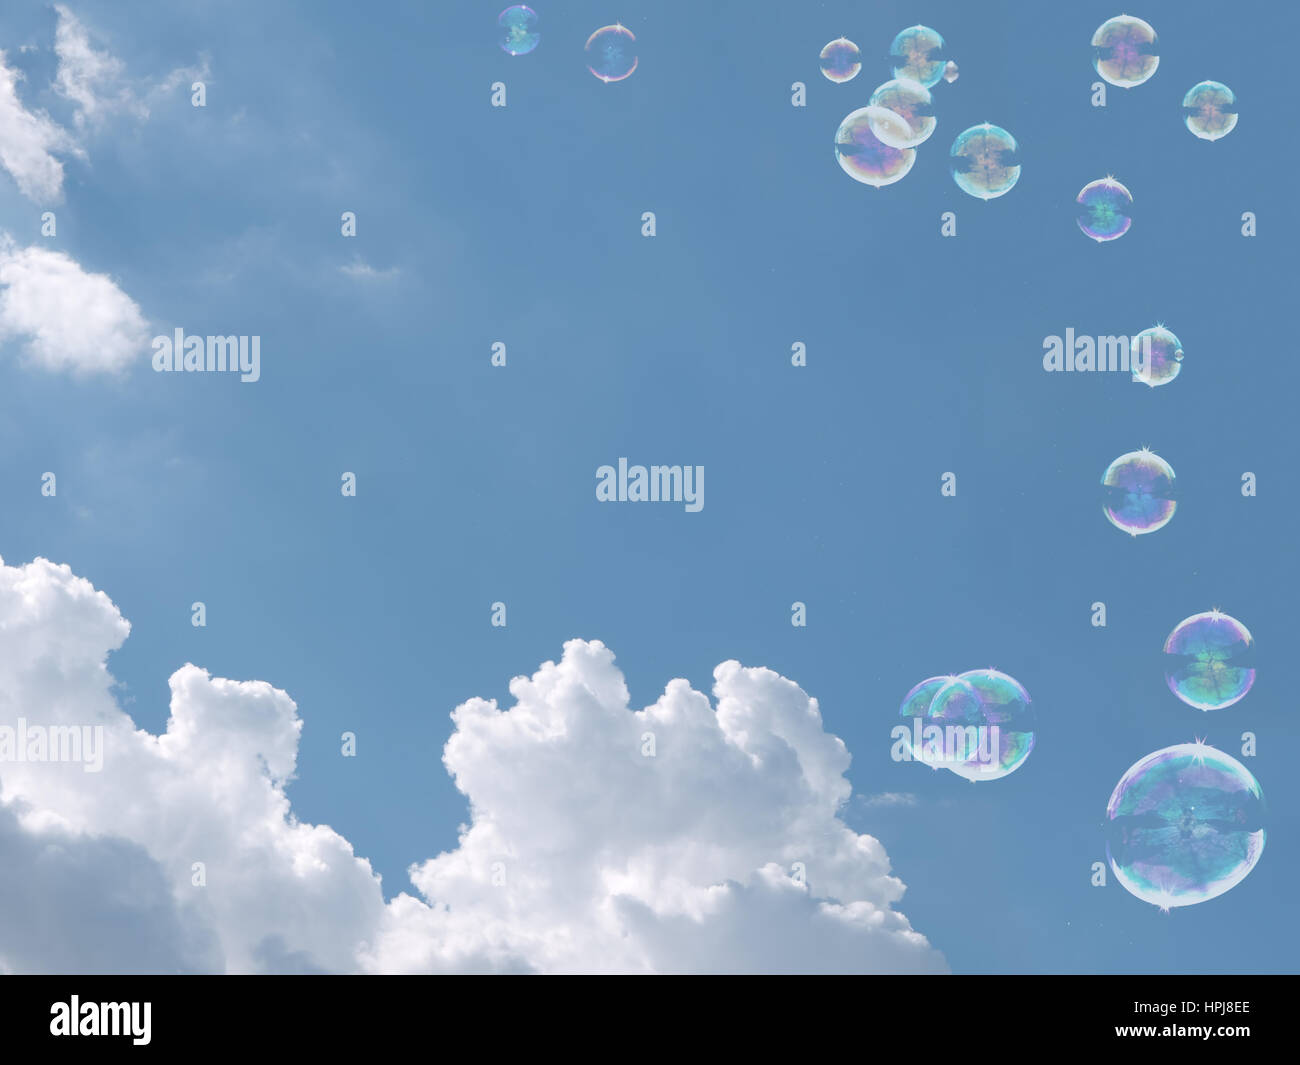 Soap bubbles and sky background. Memories of carefree childhood maybe. Or dreams, wishes etc concept. - Stock Image